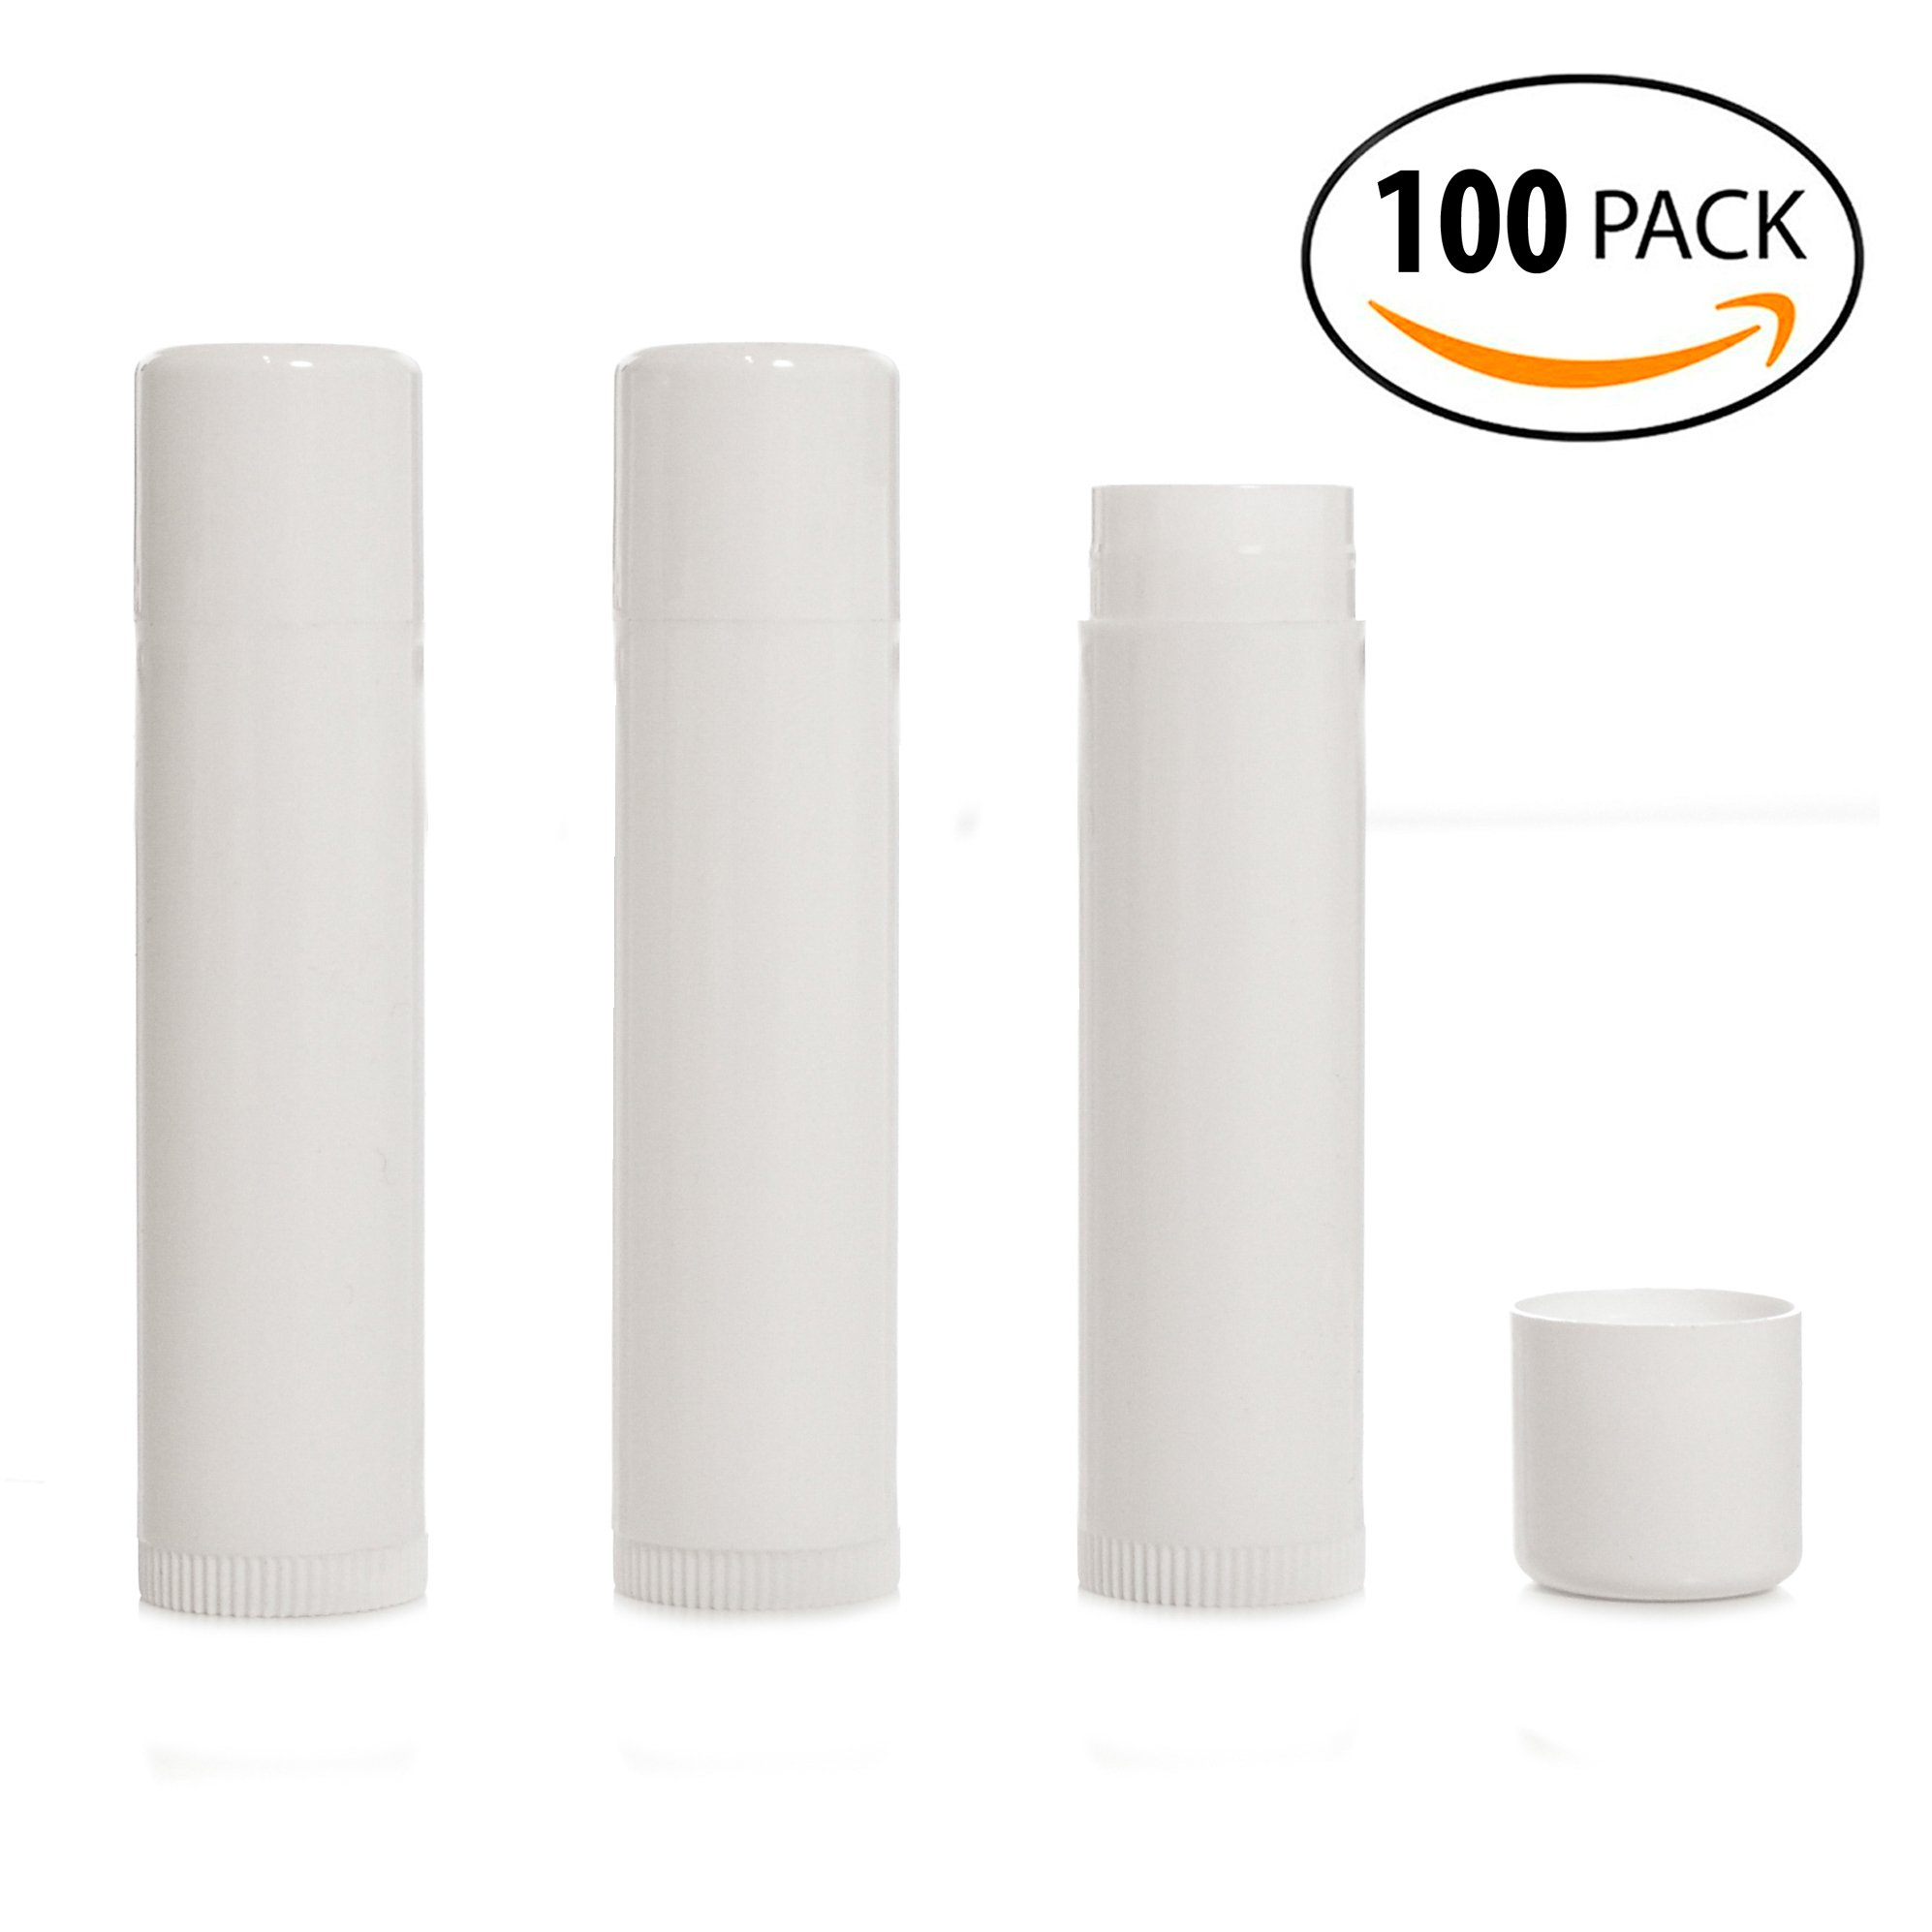 Milliard Empty Lip Balm Tubes, Empty Lip Balm Containers BPA Free - White 100 Count